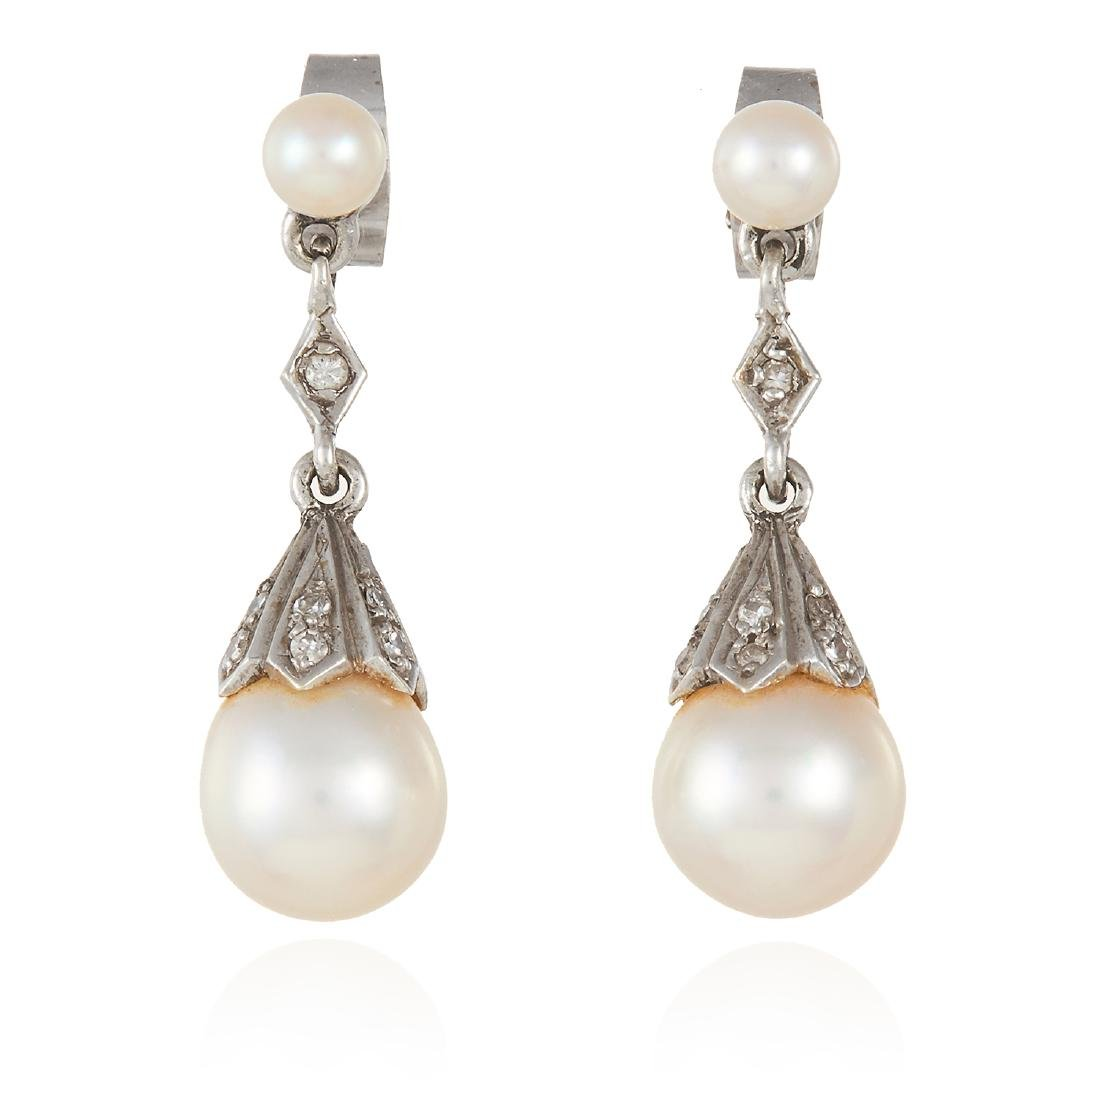 A PAIR OF ANTIQUE PEARL AND DIAMOND EARRINGS in white